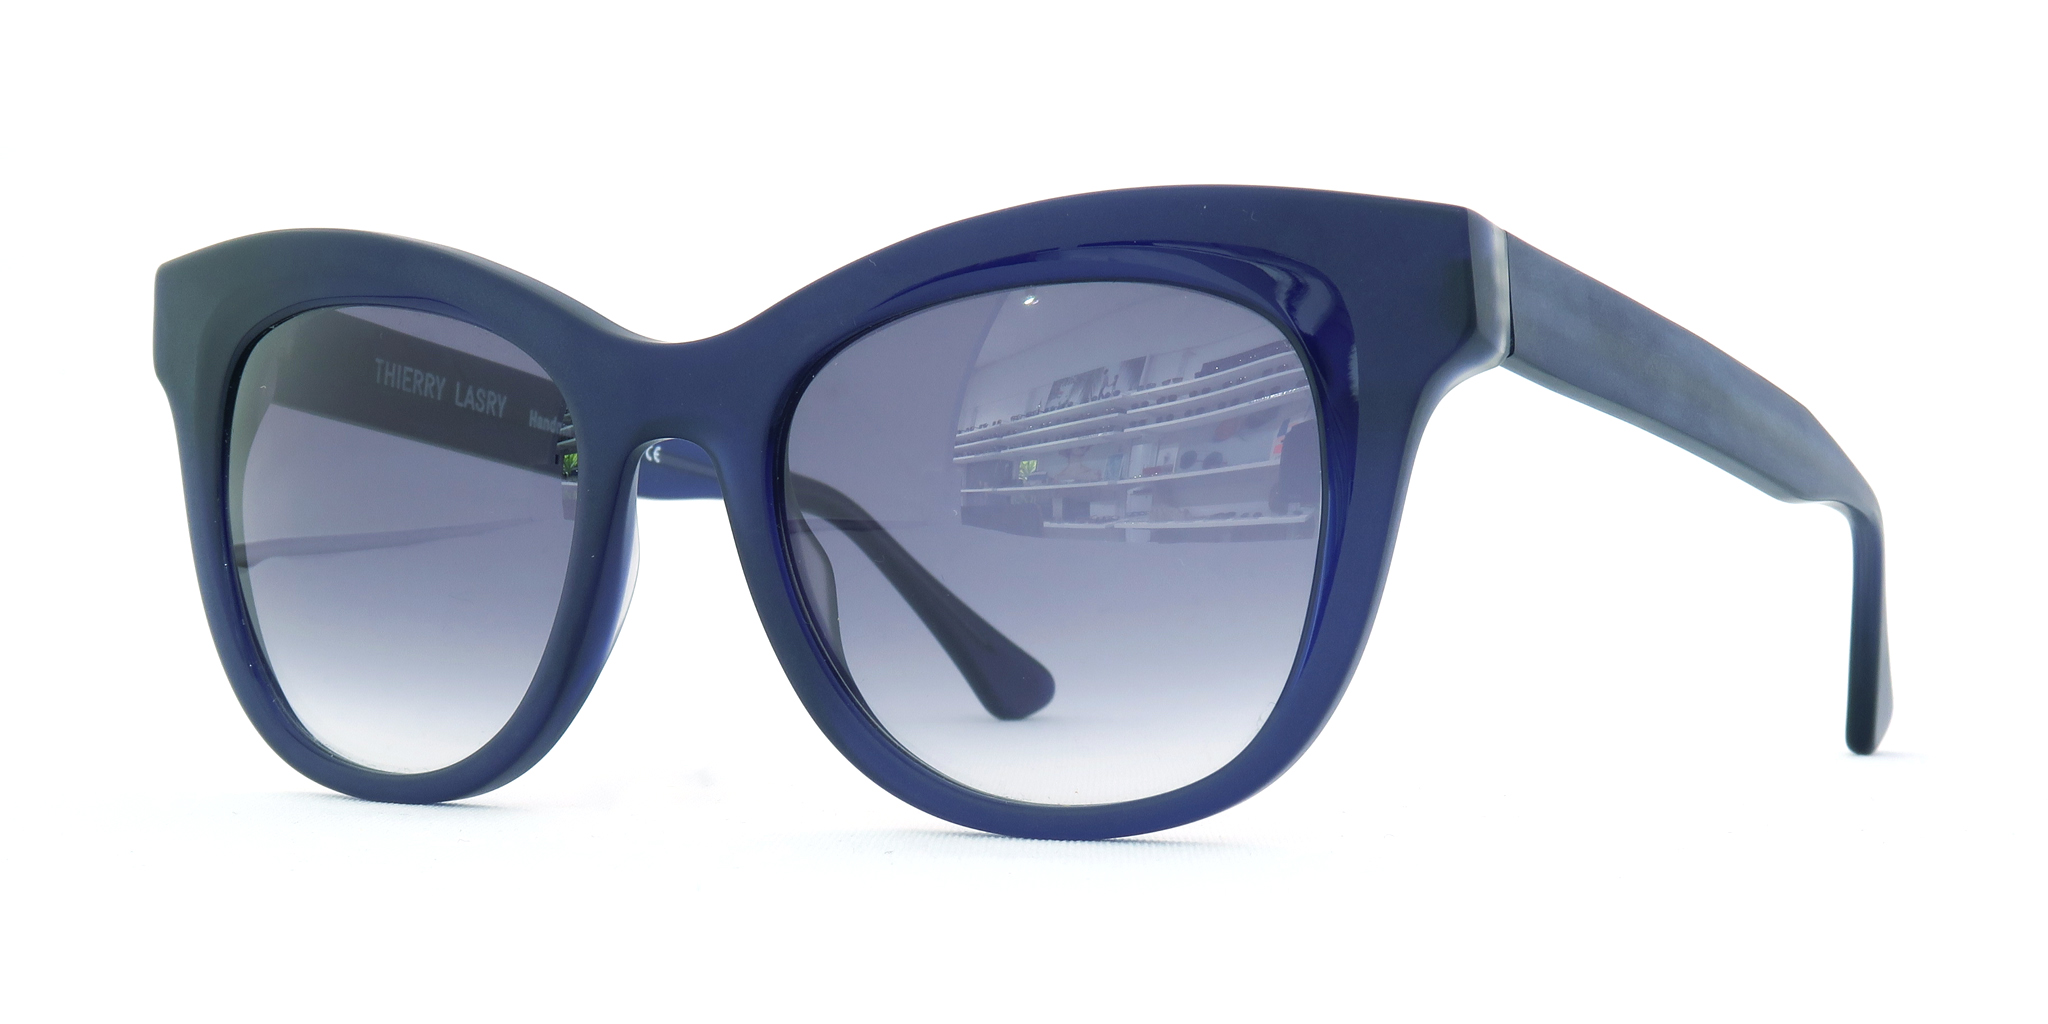 """thierry lasry """"jelly"""""""